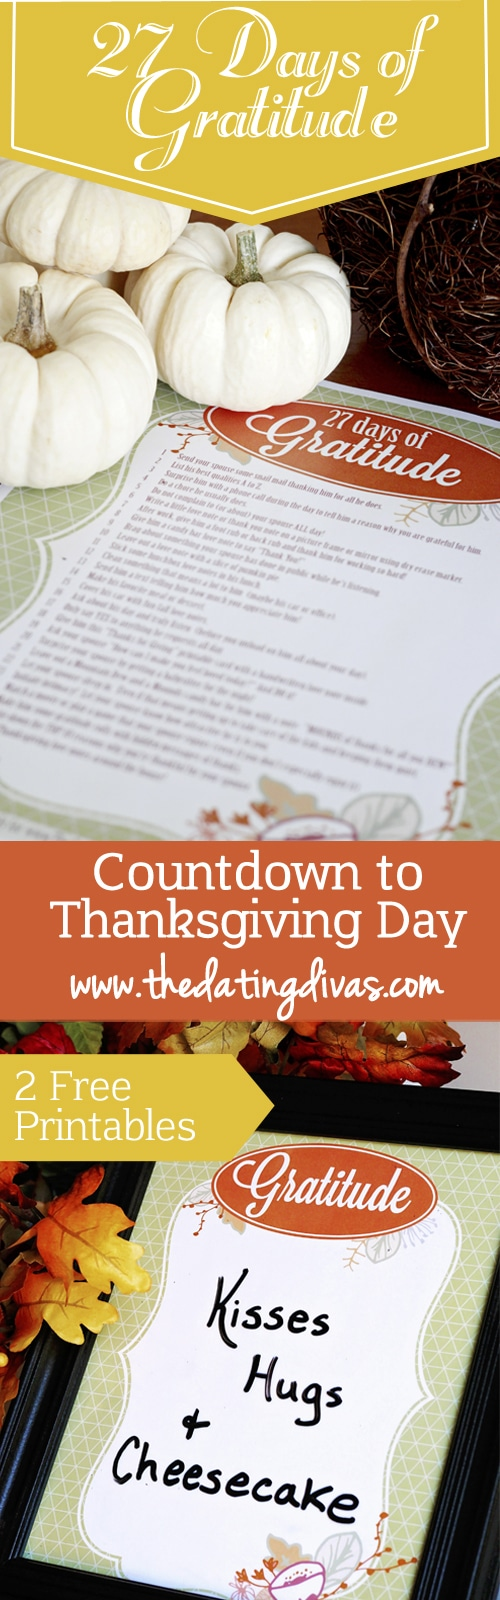 27 Days of Gratitude Pinterest